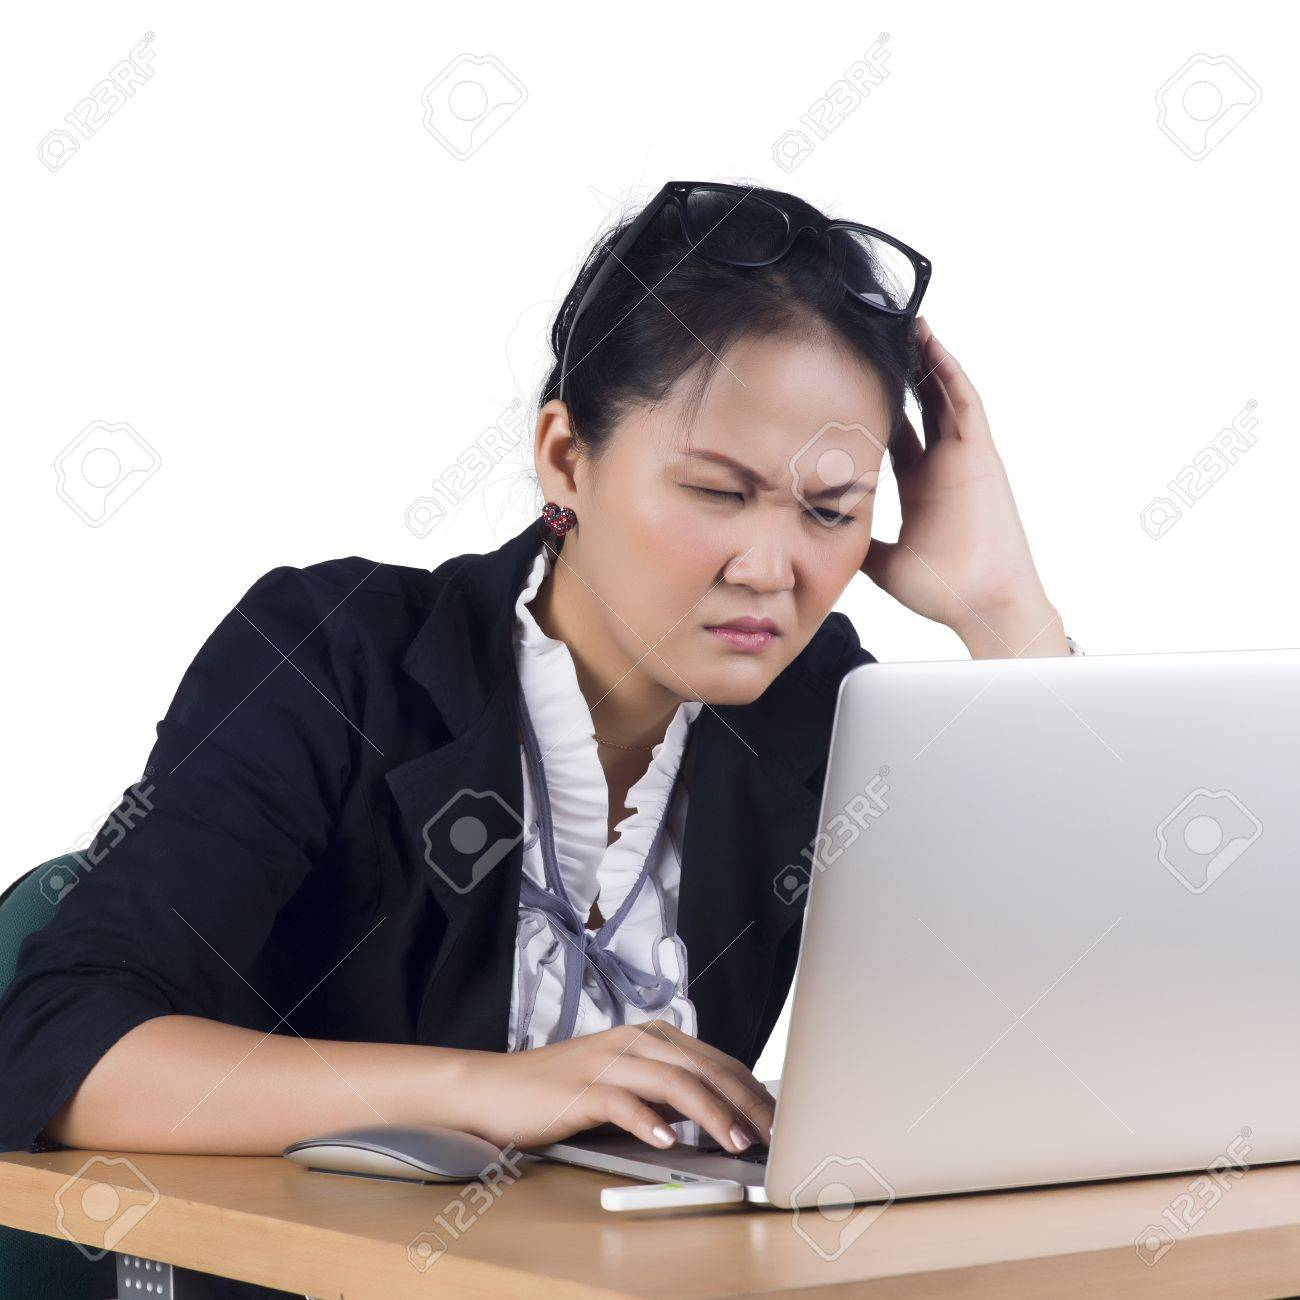 Bored business woman working on laptop looking very boring at the computer, Isolated white background. Model is Asian woman. Stock Photo - 17767298